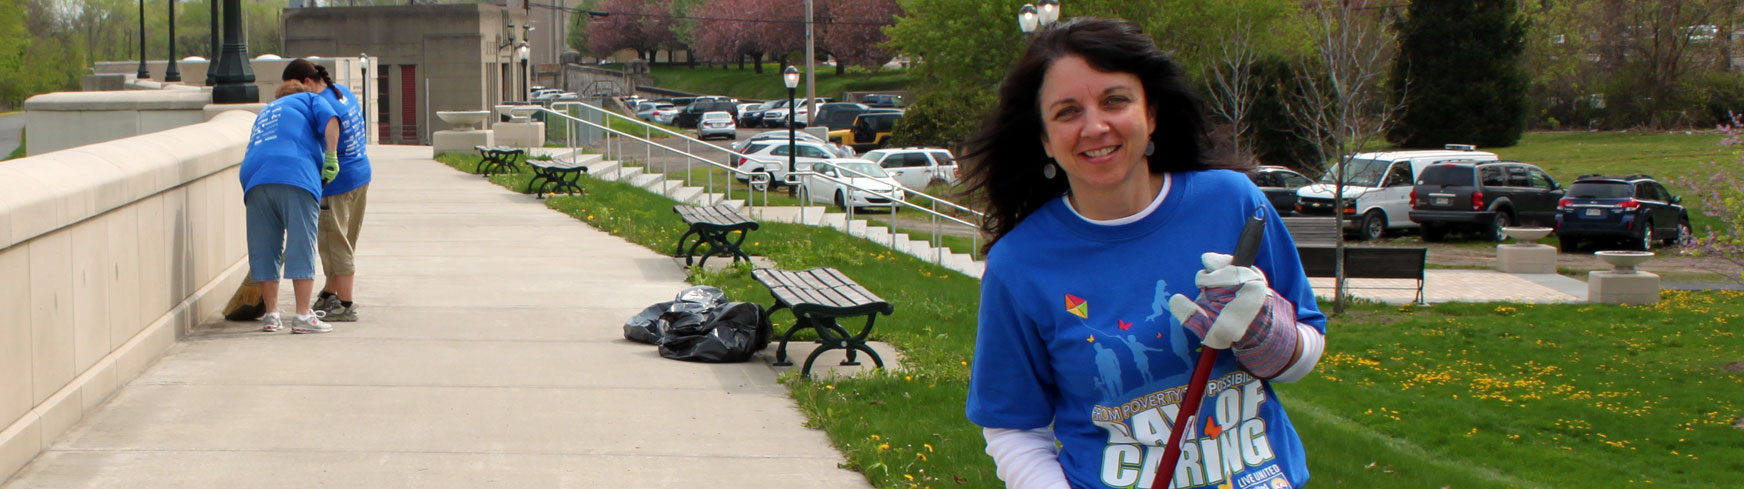 United Way of Wyoming Valley - Day of Caring - Cleaning up The Riverfront Parks in the Wyoming Valley.